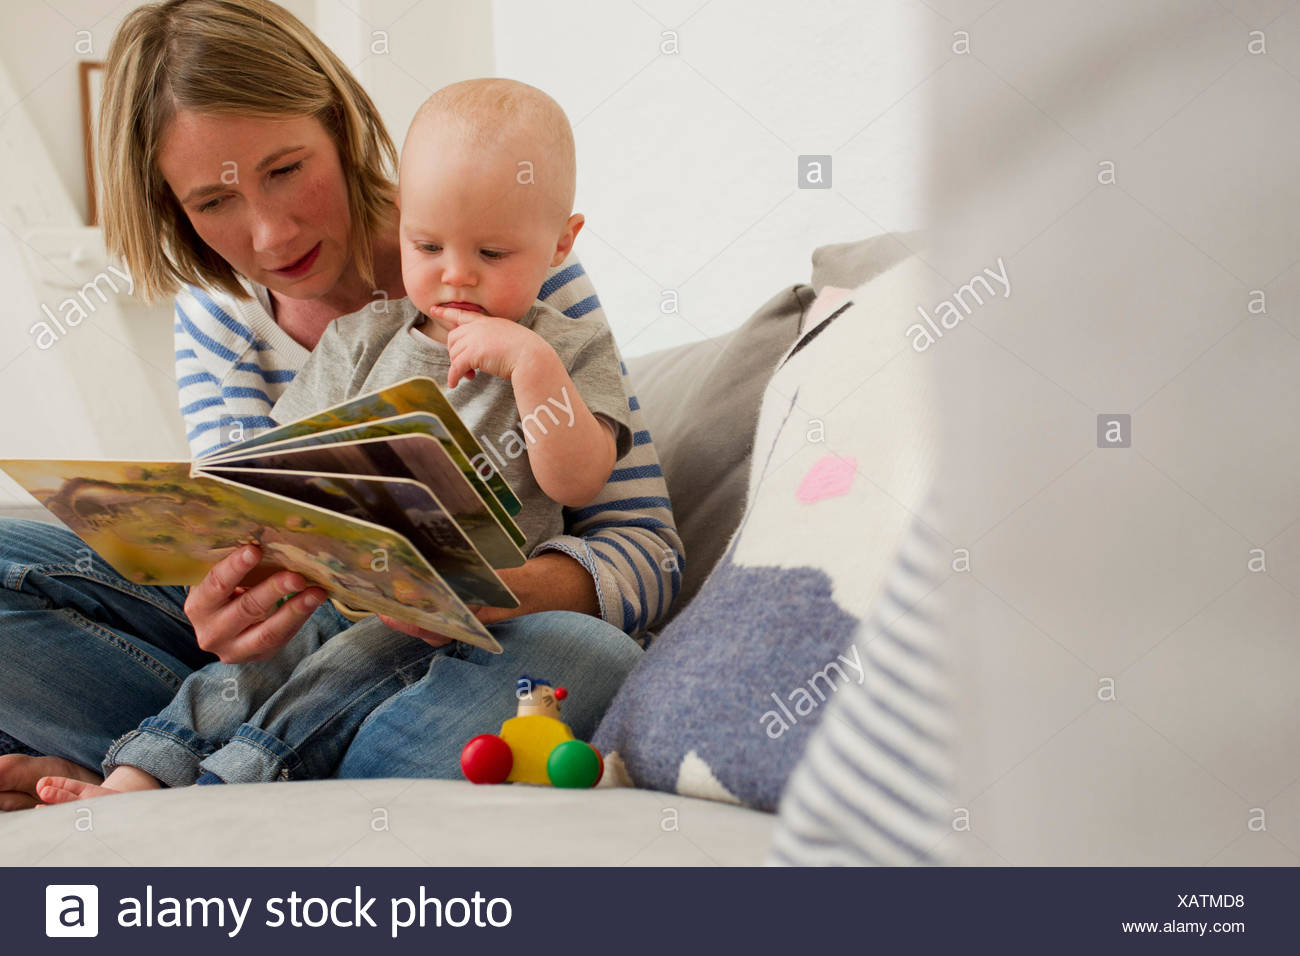 Mature mother and baby daughter on sitting room sofa reading storybook - Stock Image